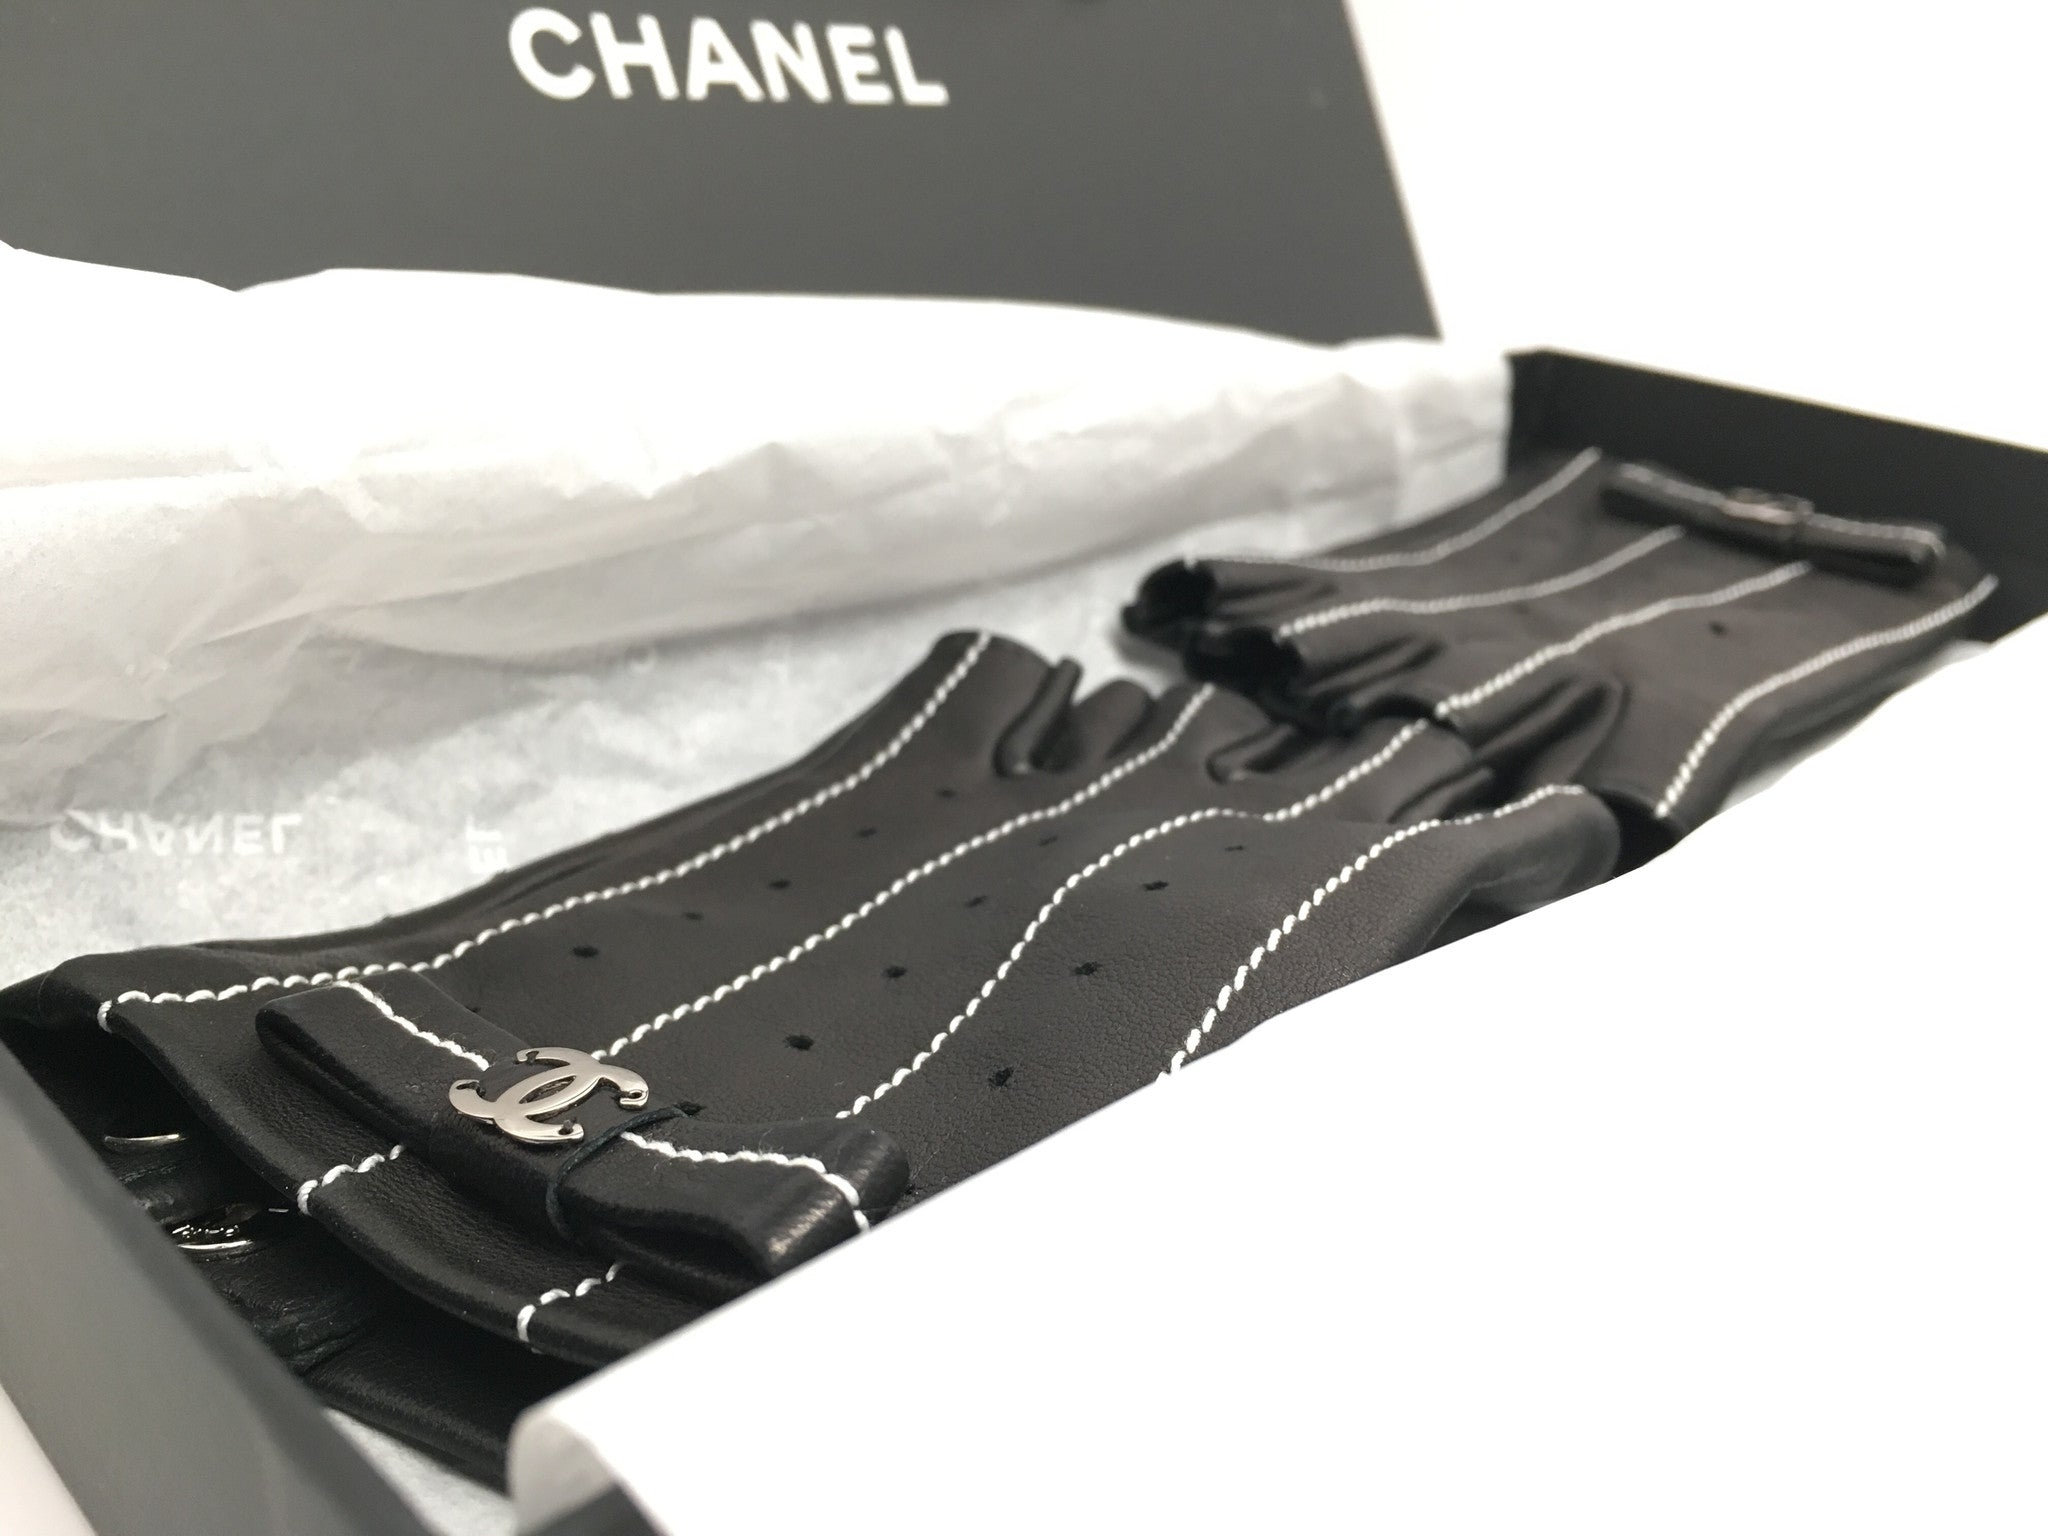 CHANEL BLACK LAMBSKIN LEATHER DRIVING BOW GLOVES - SIZE 7